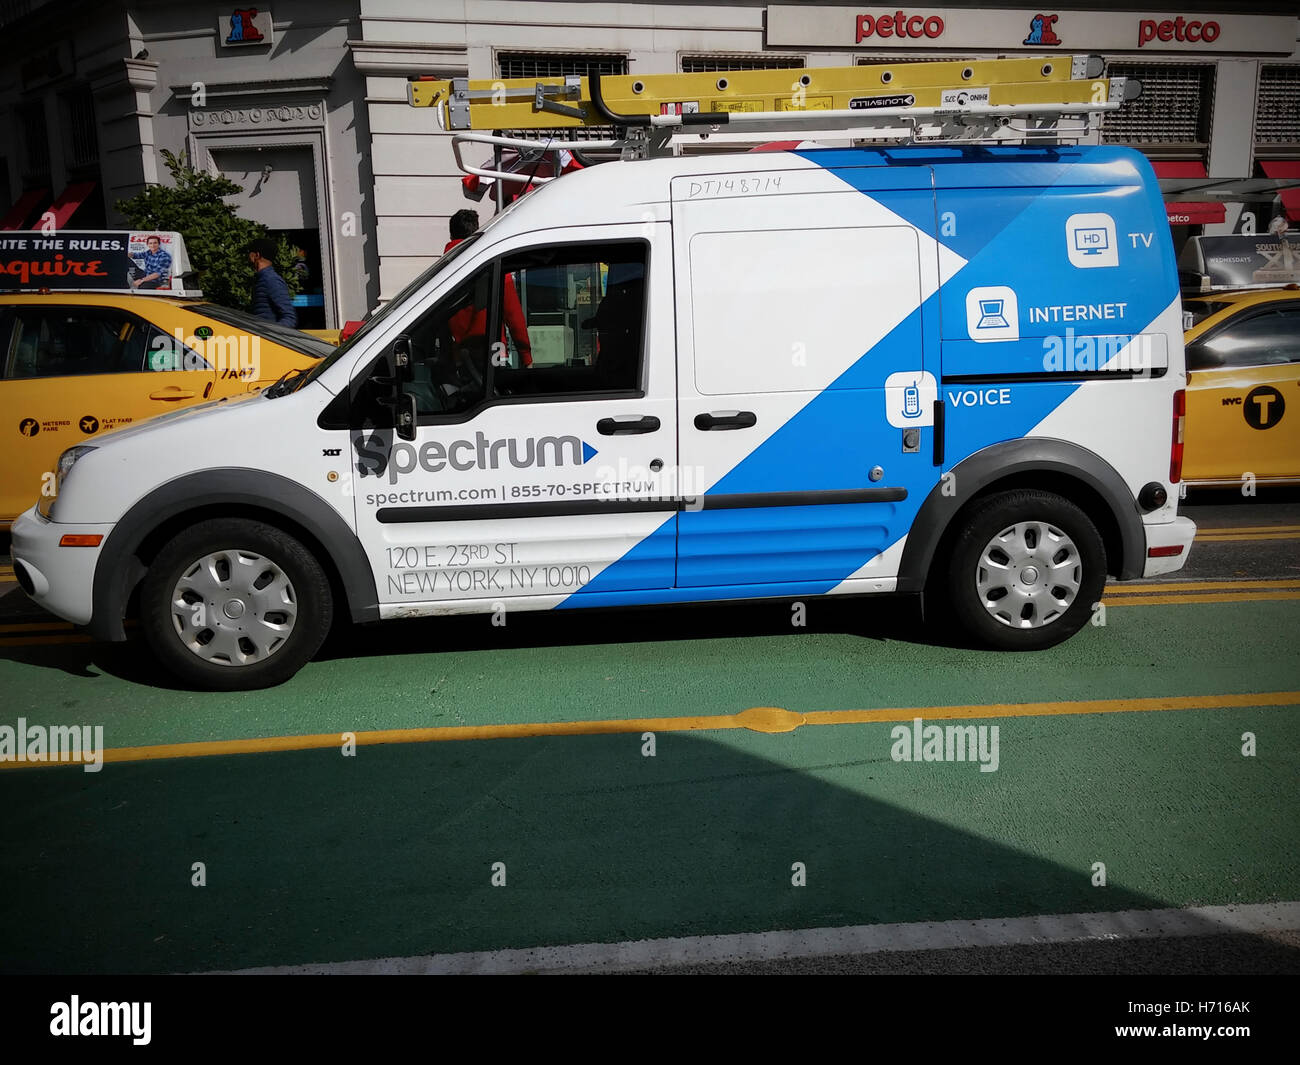 A Spectrum neé Time Warner Cable van in New York on Saturday